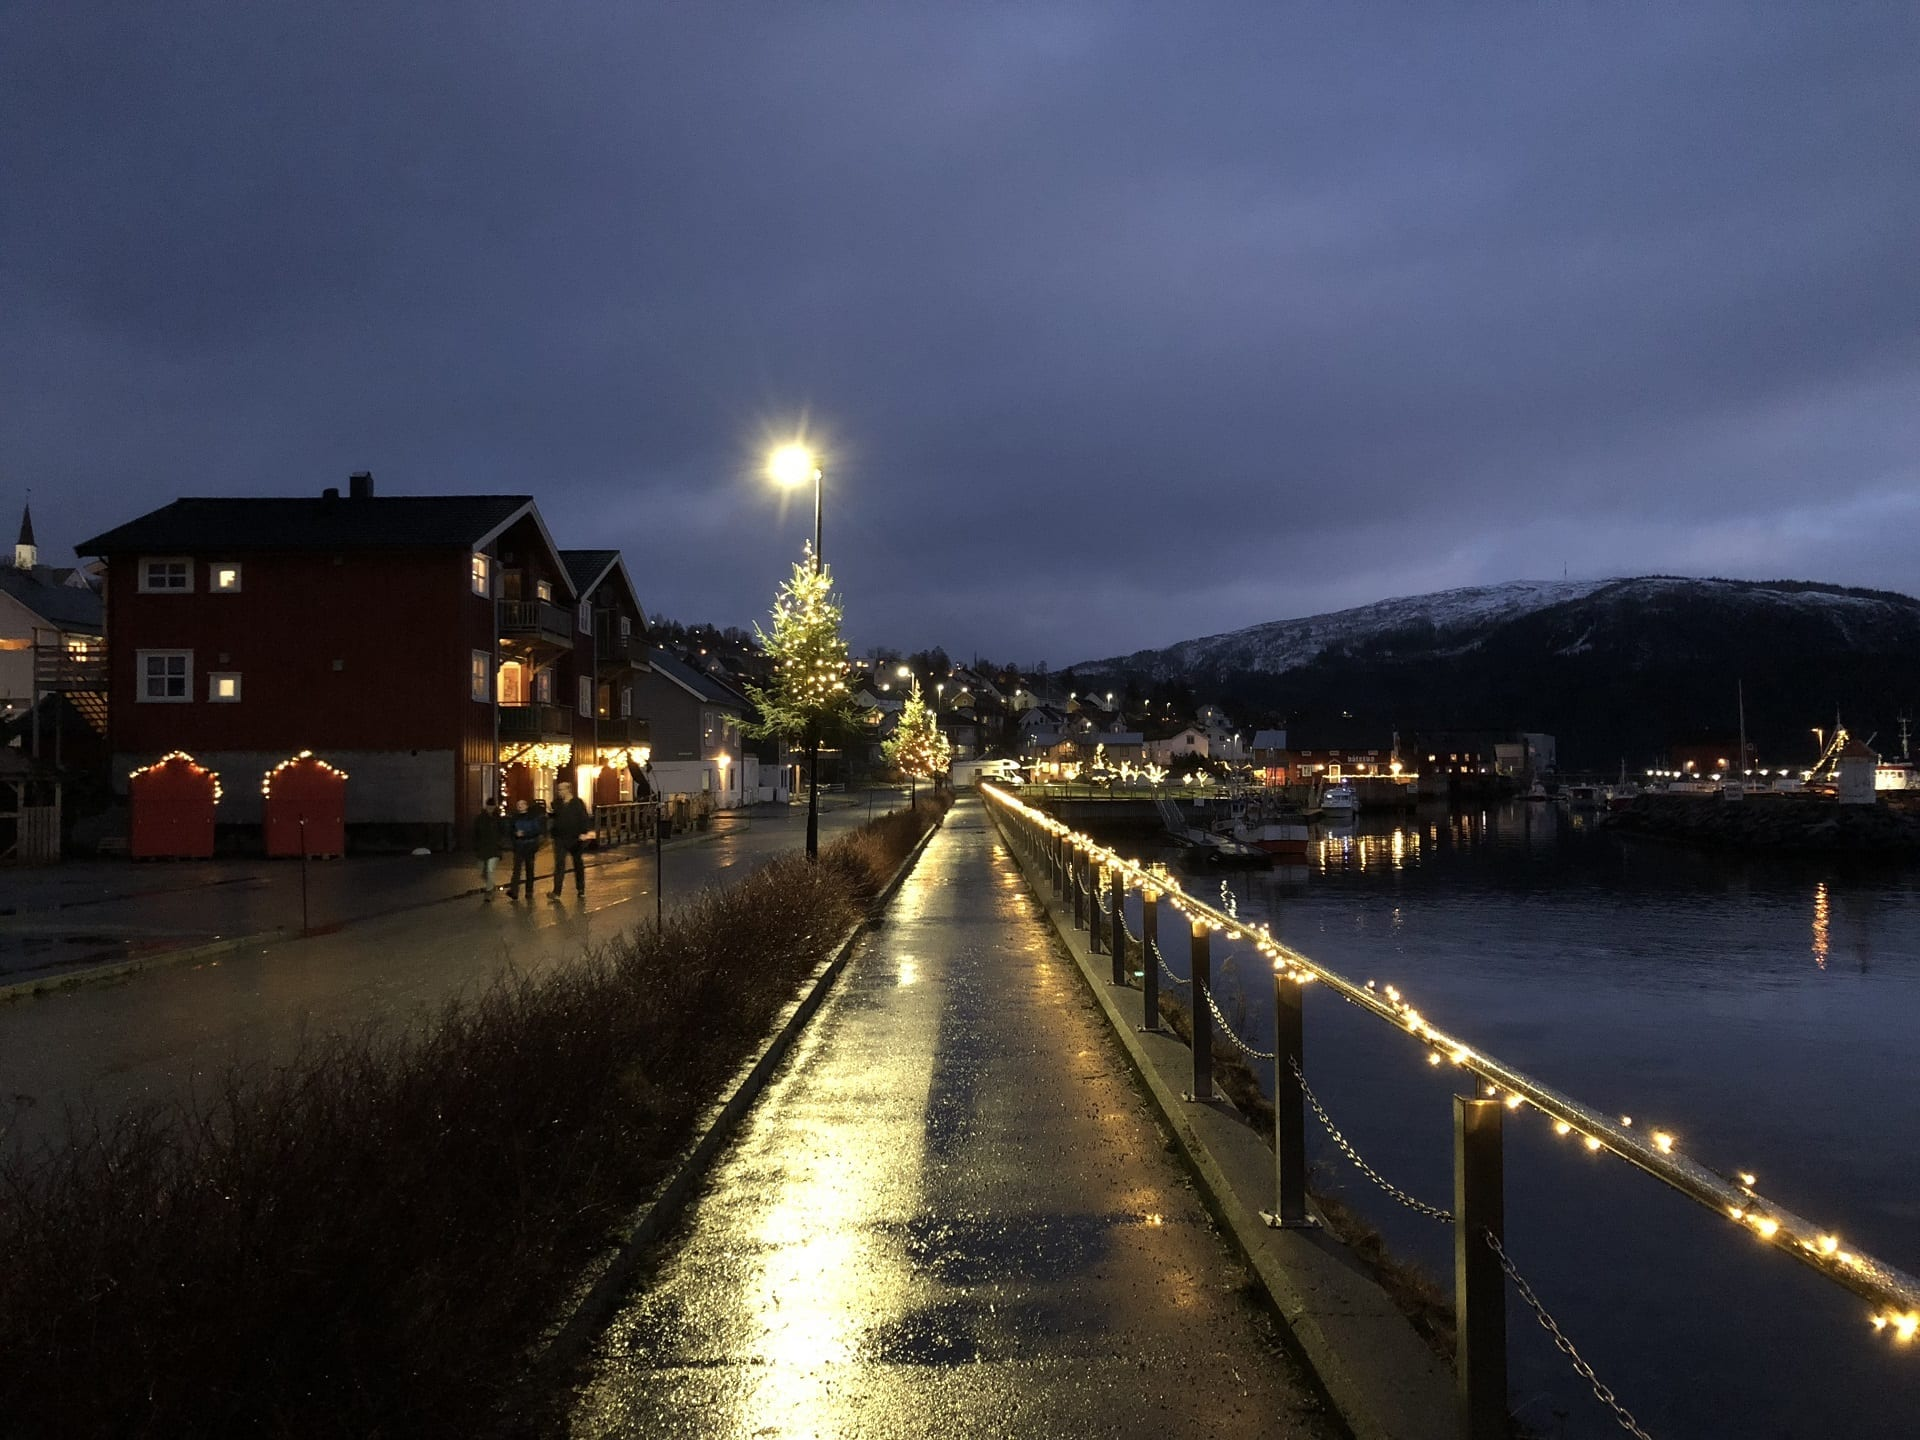 Down by the marina at Hemnesberget with the streets and trees decorated with lights at dark for Christmas.